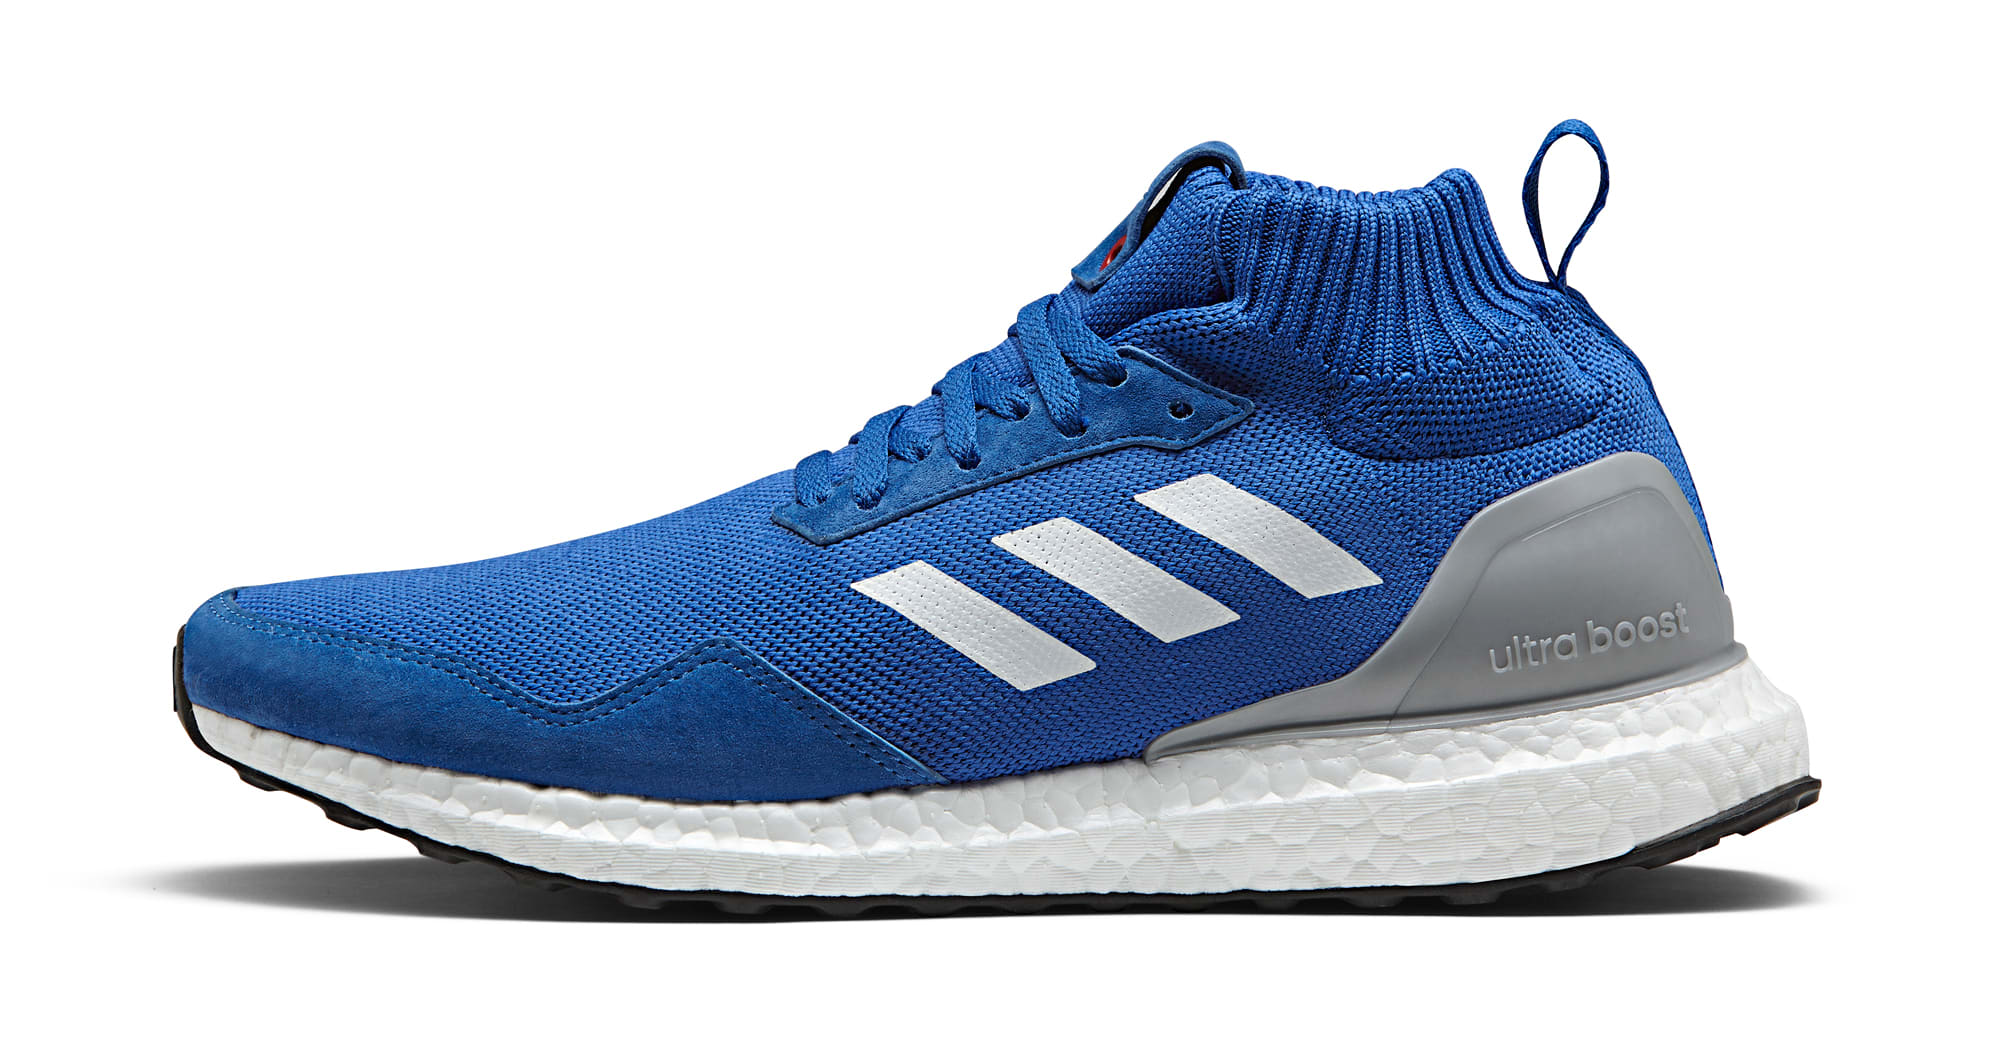 Adidas Ultra Boost Mid Run Thru Time 2